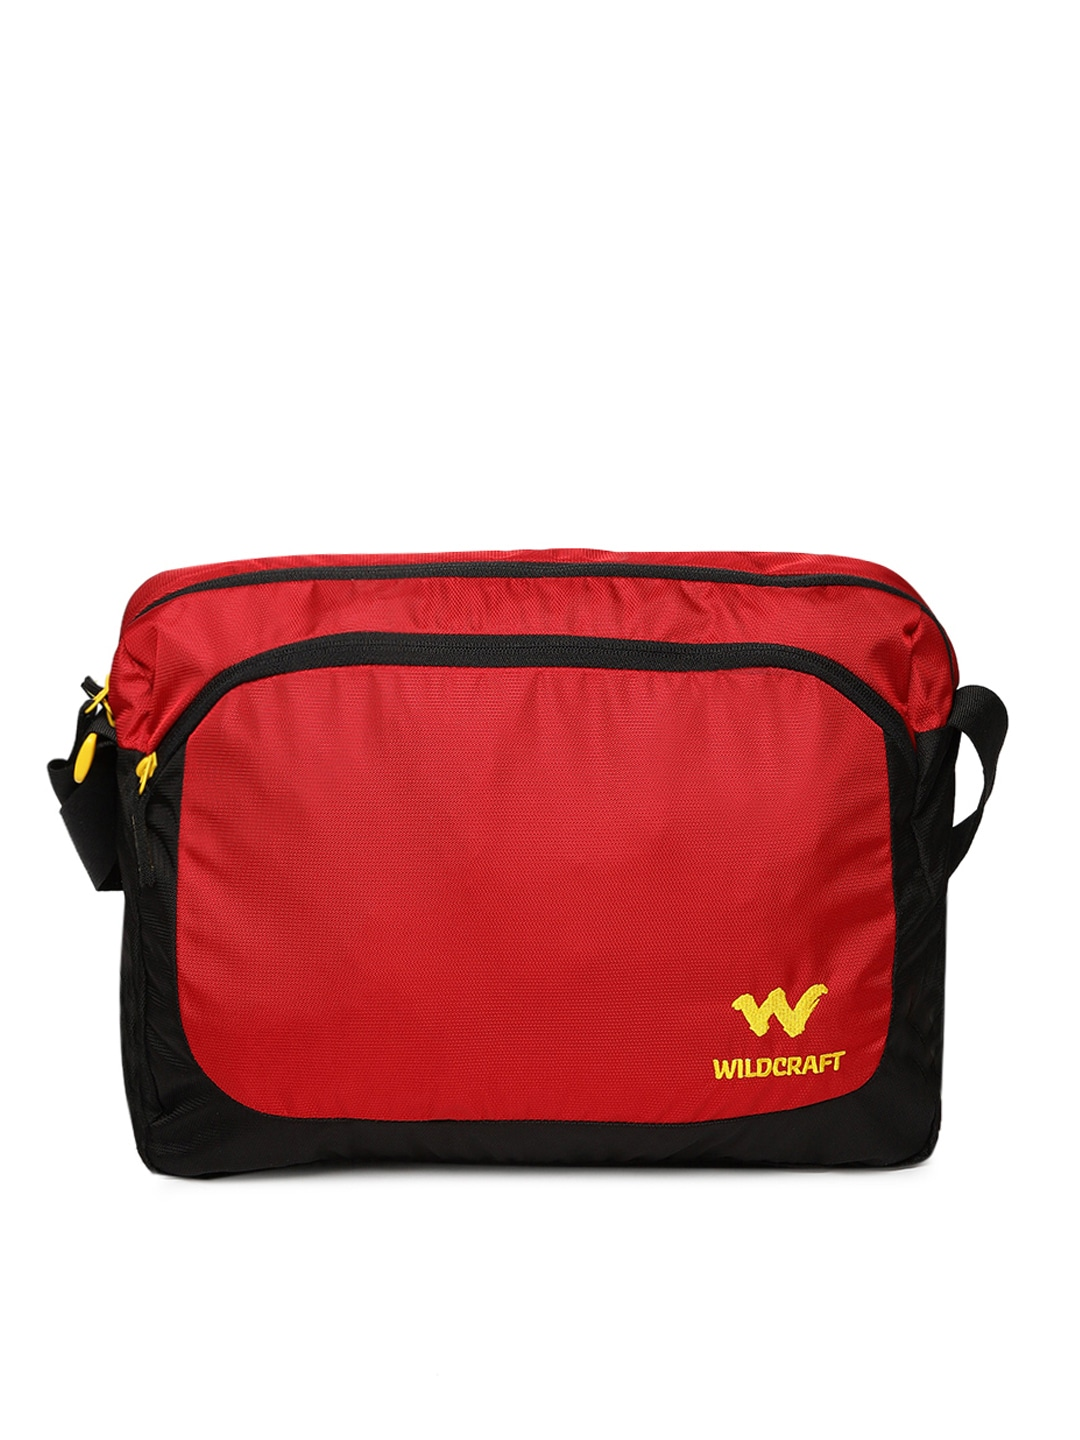 799f04f1ef Wildcraft Bags Backpacks Handbags - Buy Wildcraft Bags Backpacks Handbags  online in India